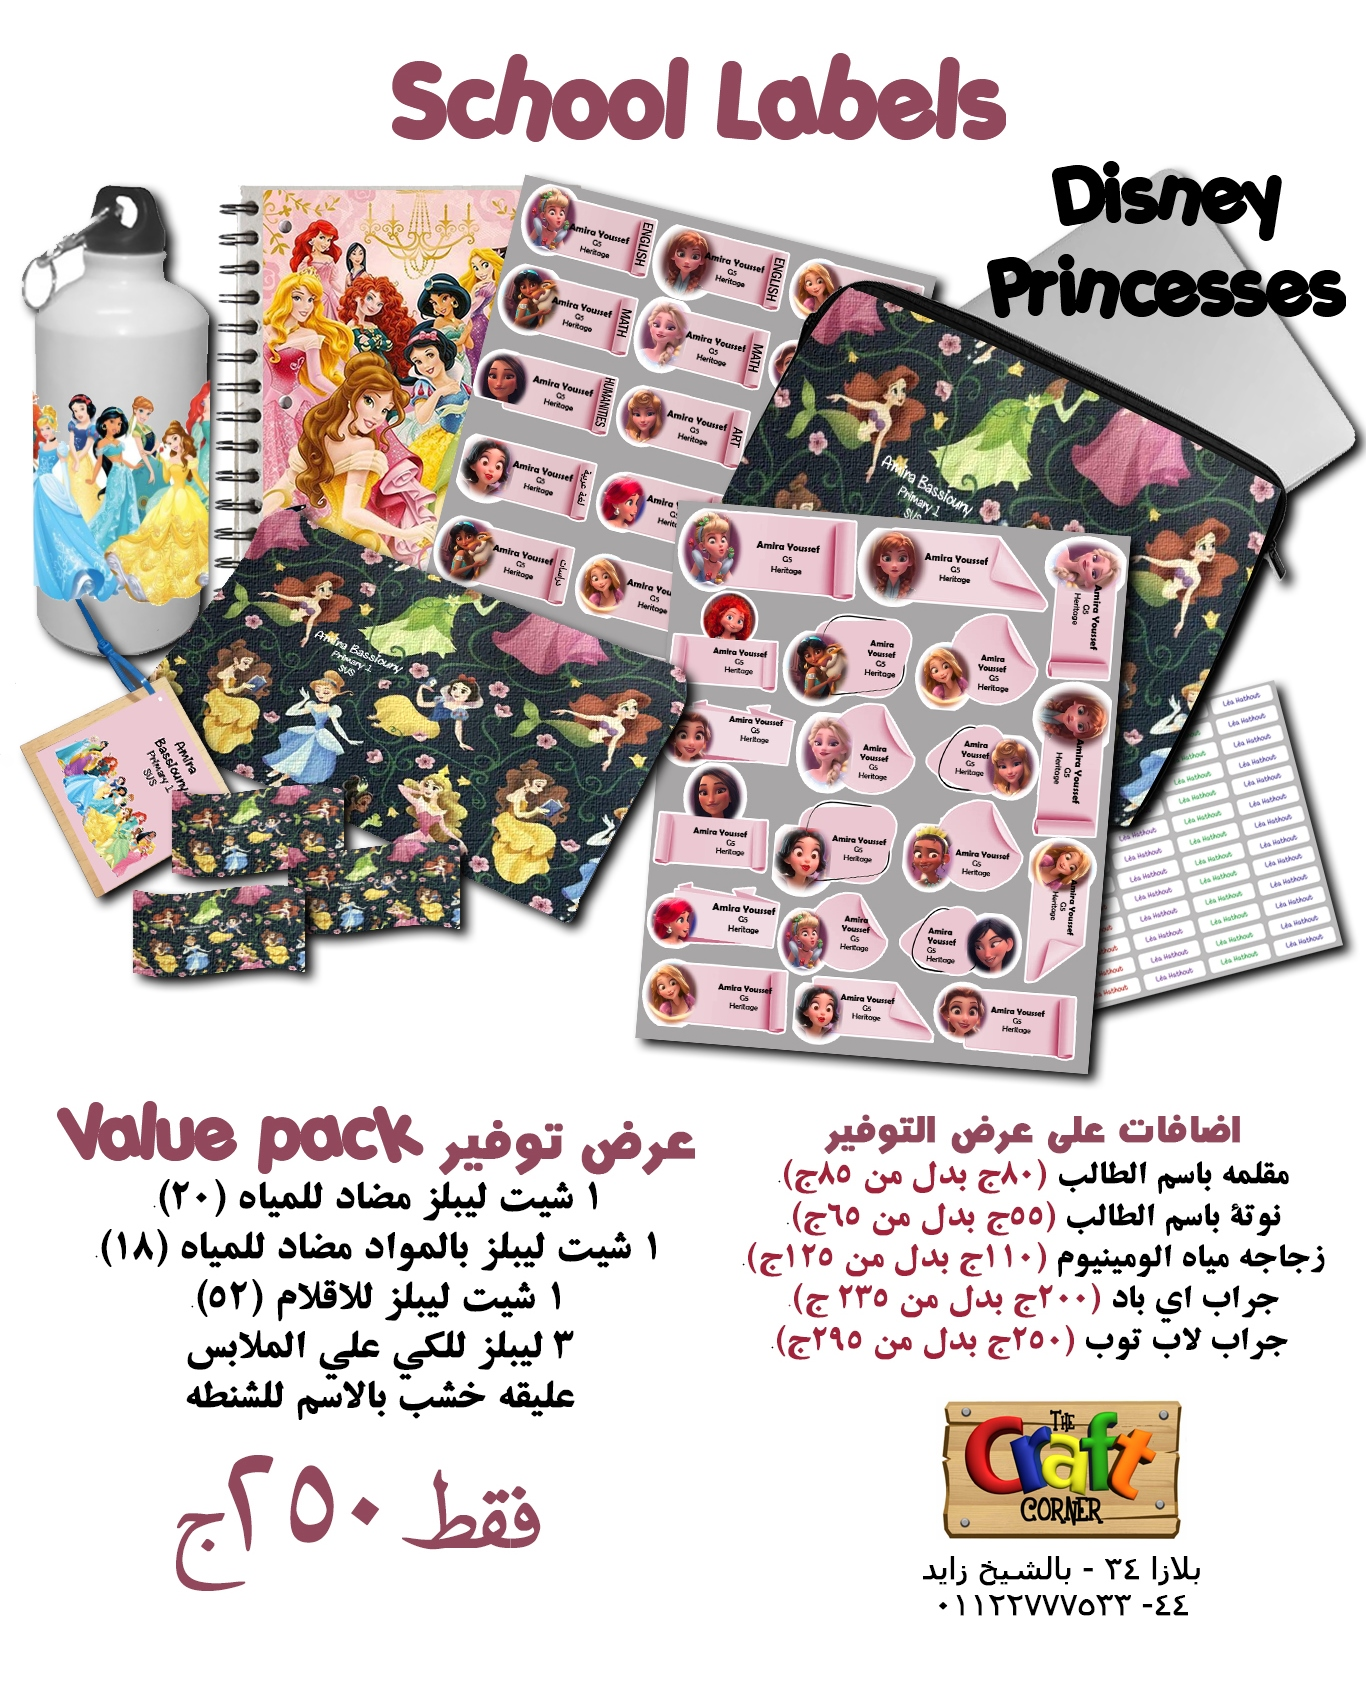 Disney princesses ad arabic